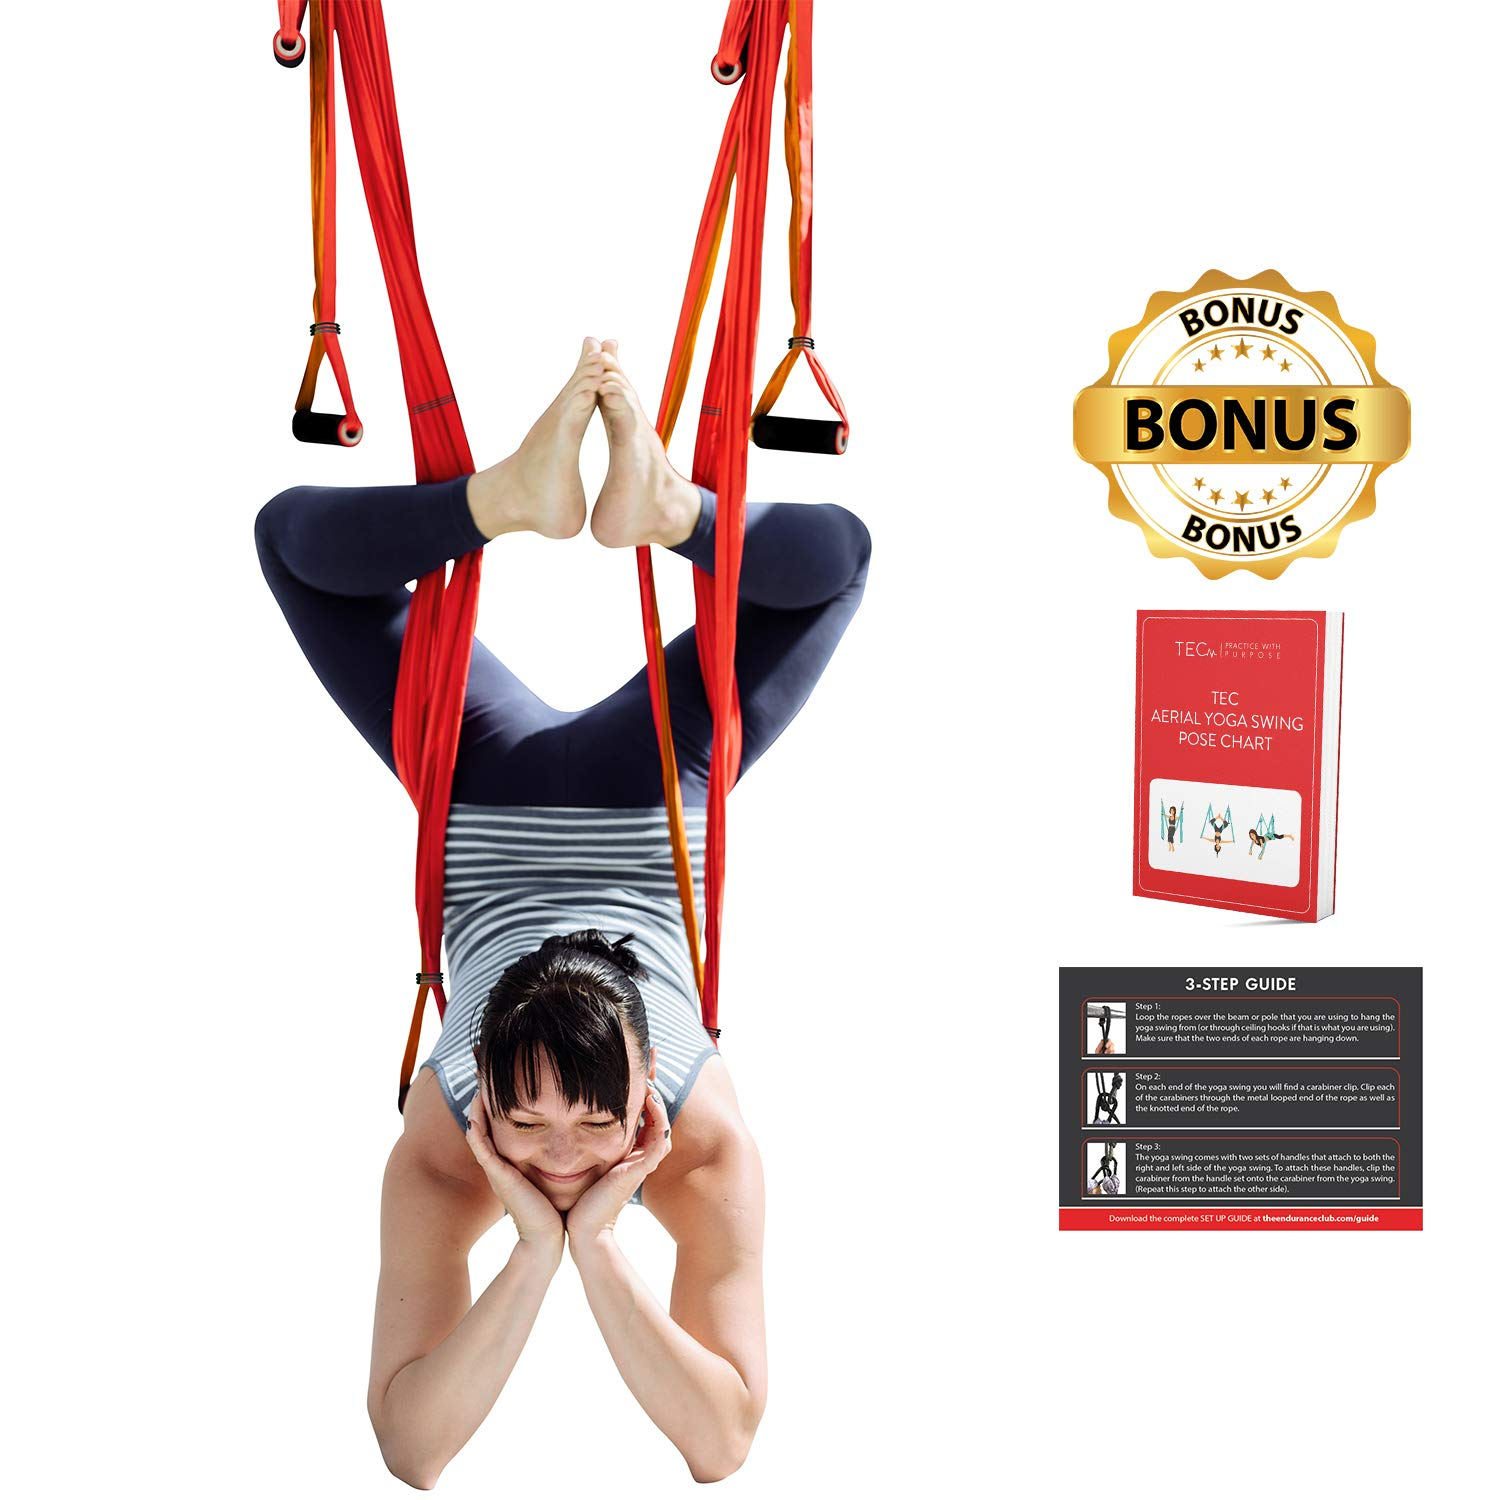 TEC Aerial Yoga Swing - Ultra Strong Trapeze for Inversion Stretches & Exercises; Increases Strength, Flexibility, and Relieves Back Pain; Includes ...